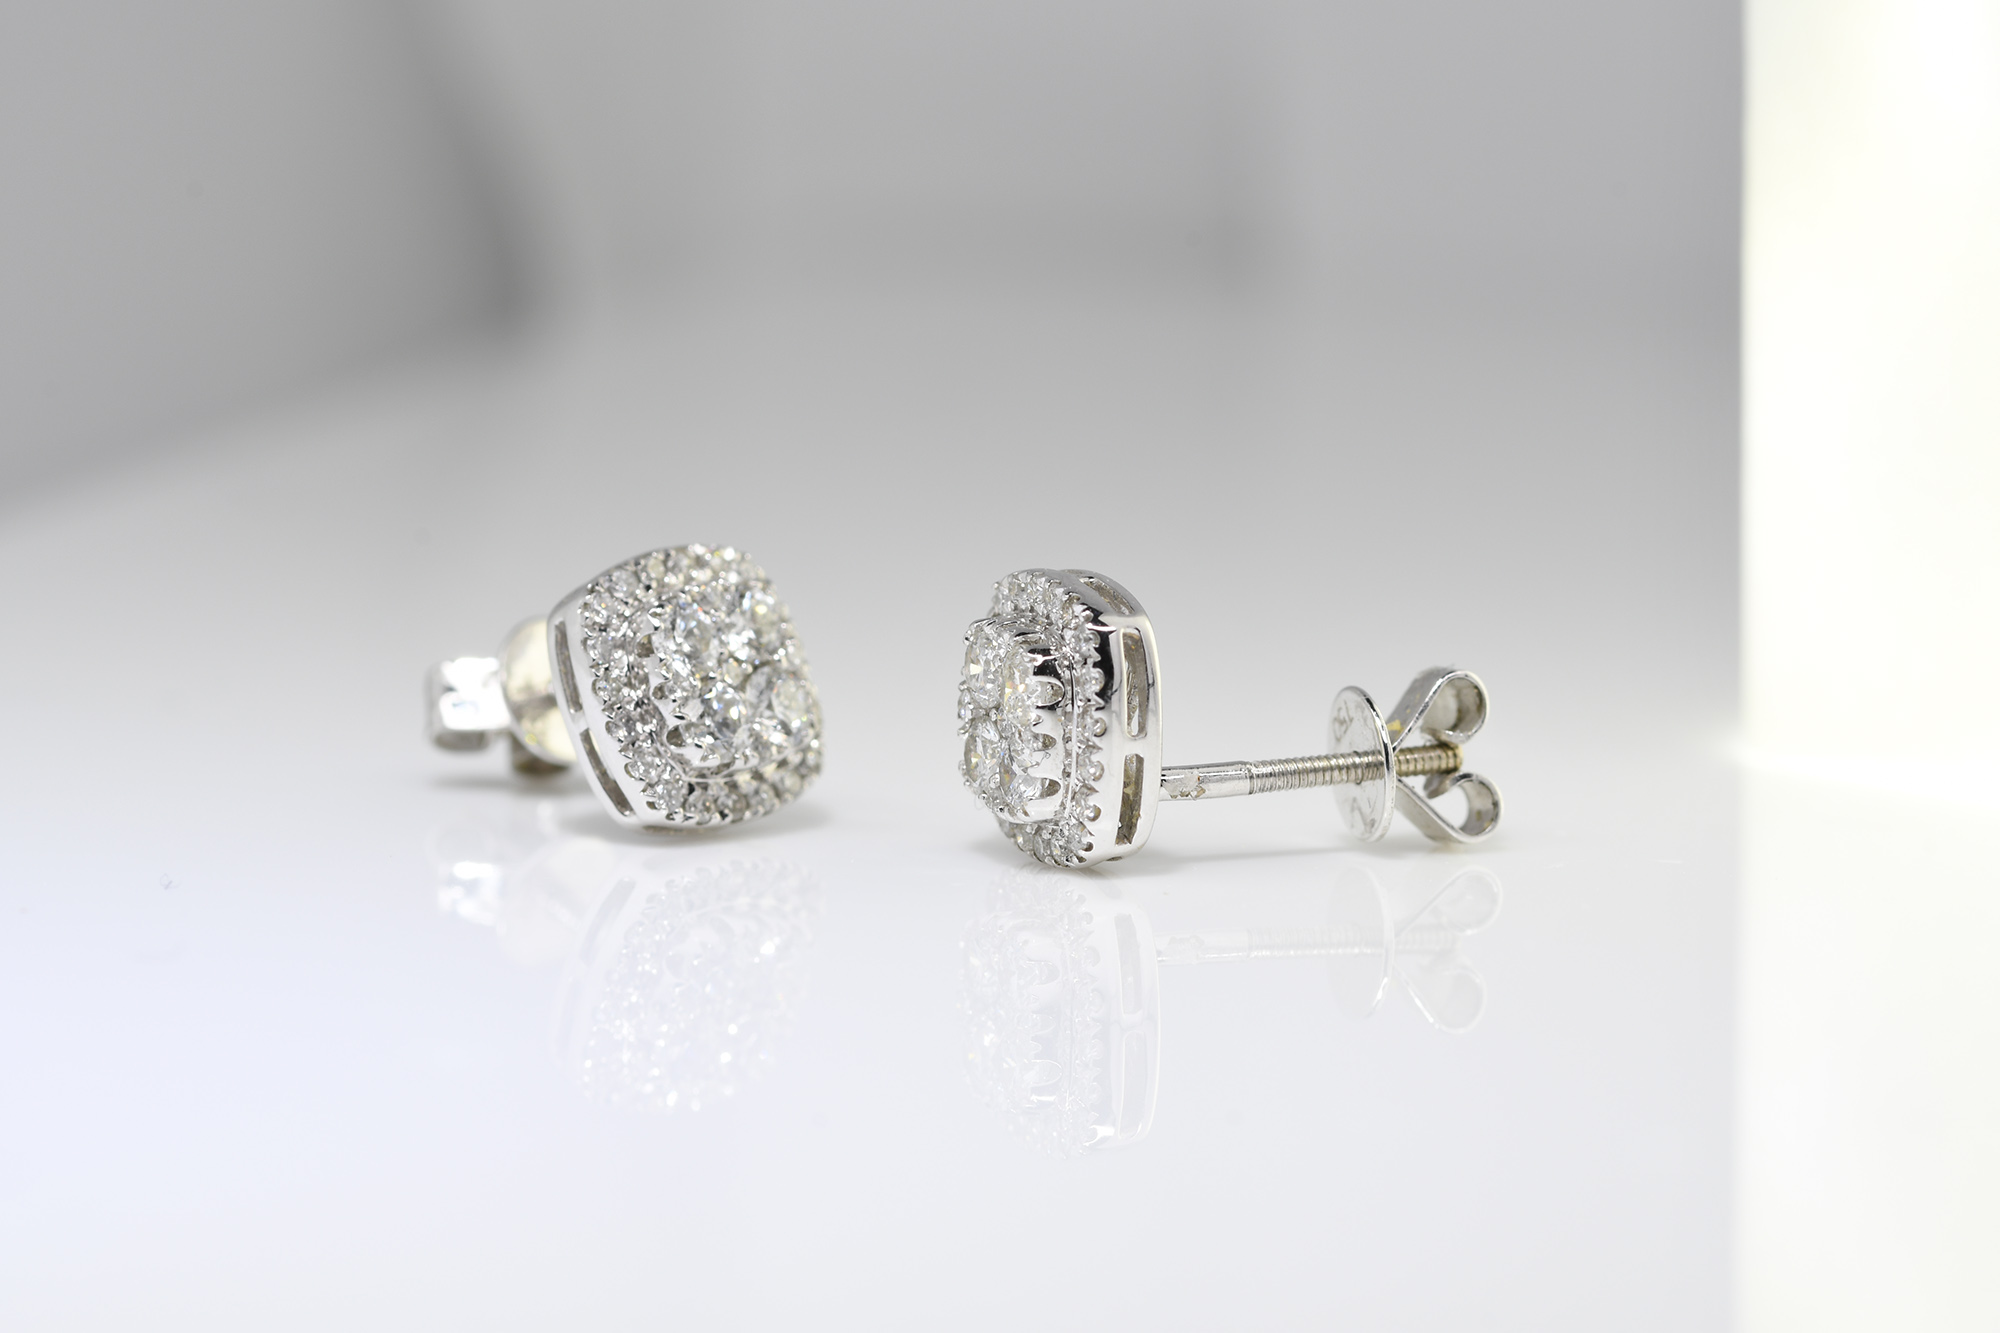 Diamond Earrings - Image 2 of 2